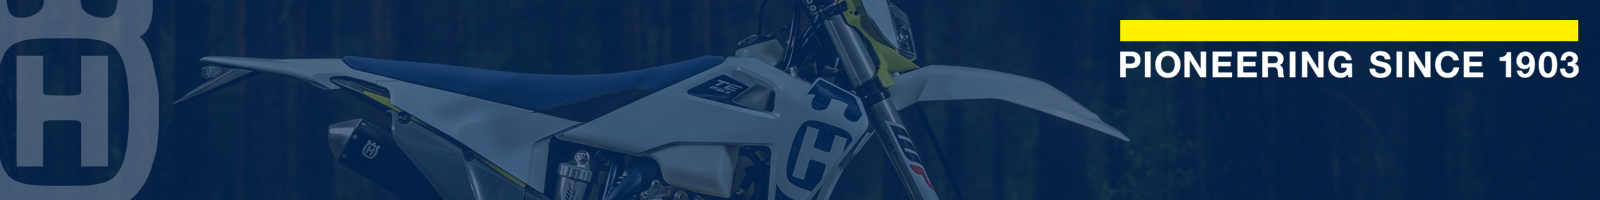 HUSQVARNA BLUE GOODIES